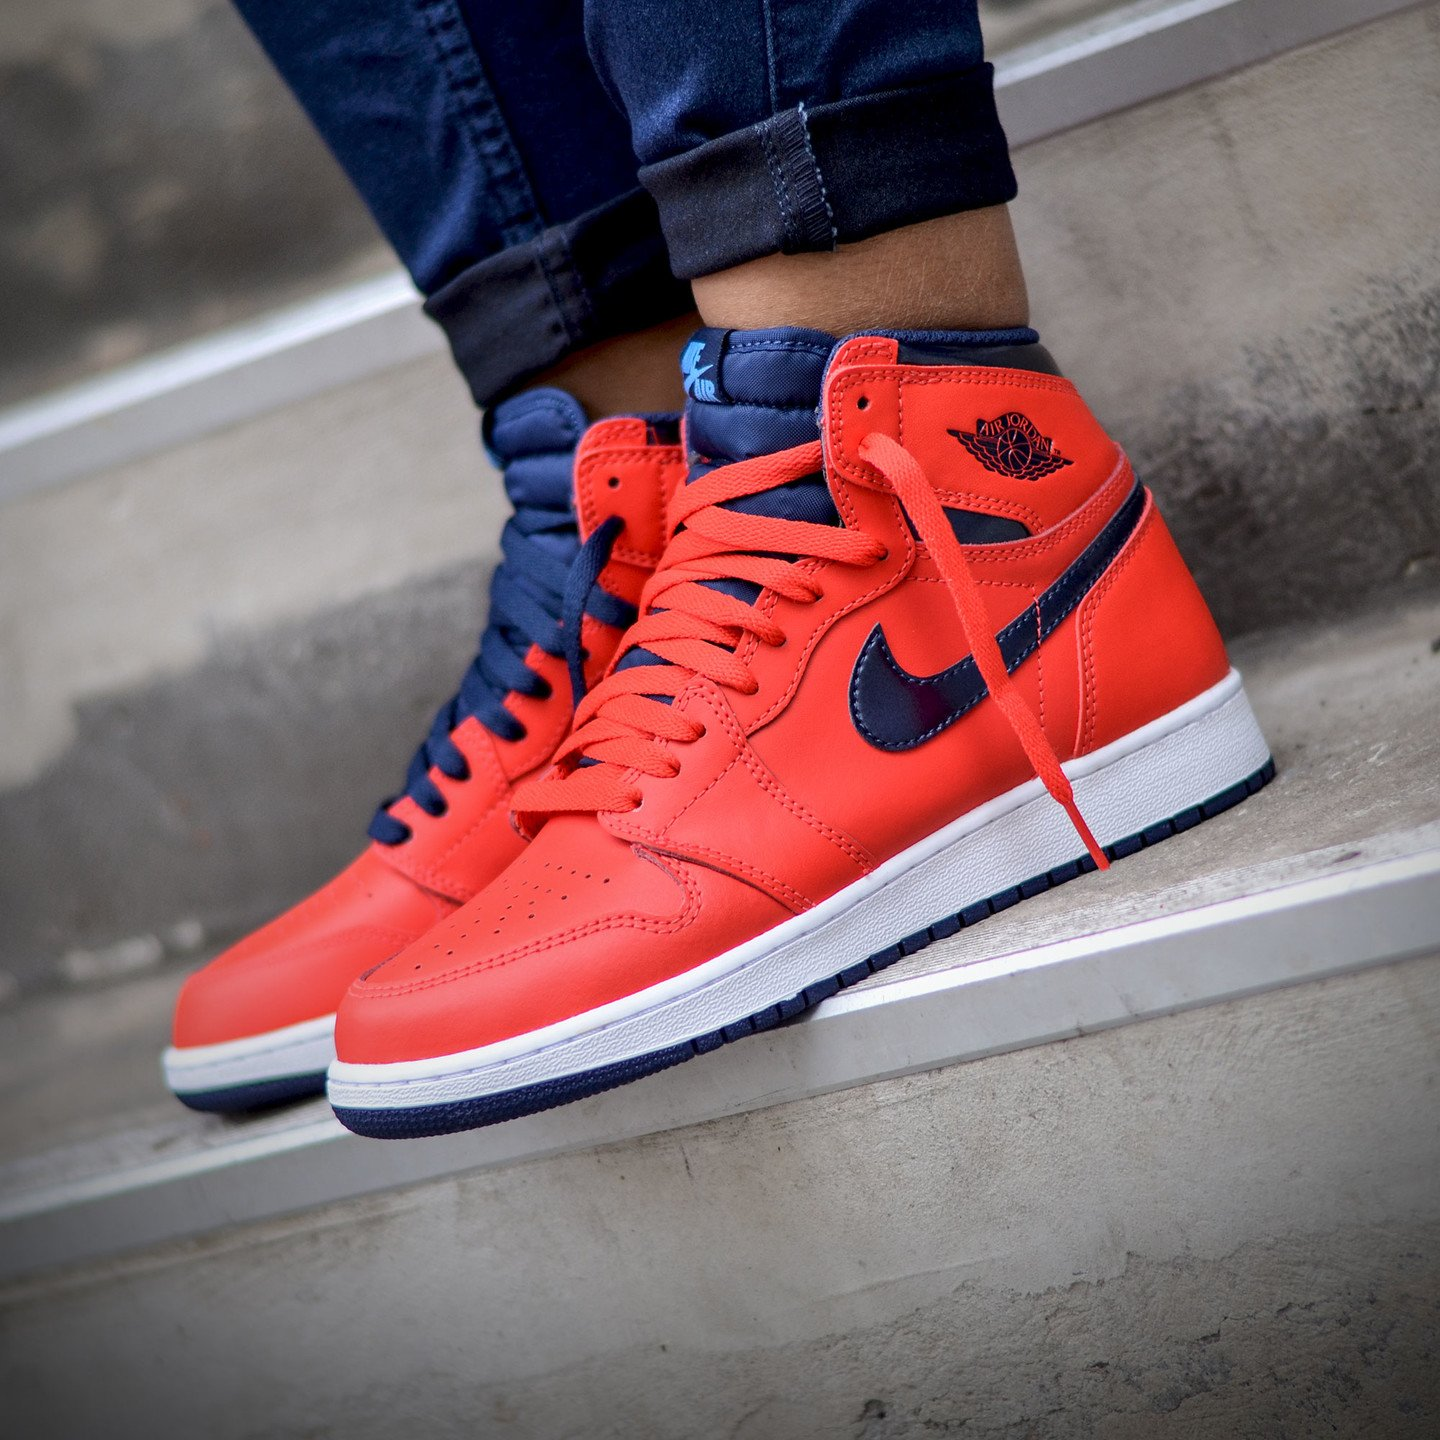 Nike Air Jordan 1 Retro High OG 'Letterman' Light Crimson / University Blue 555088-606-44